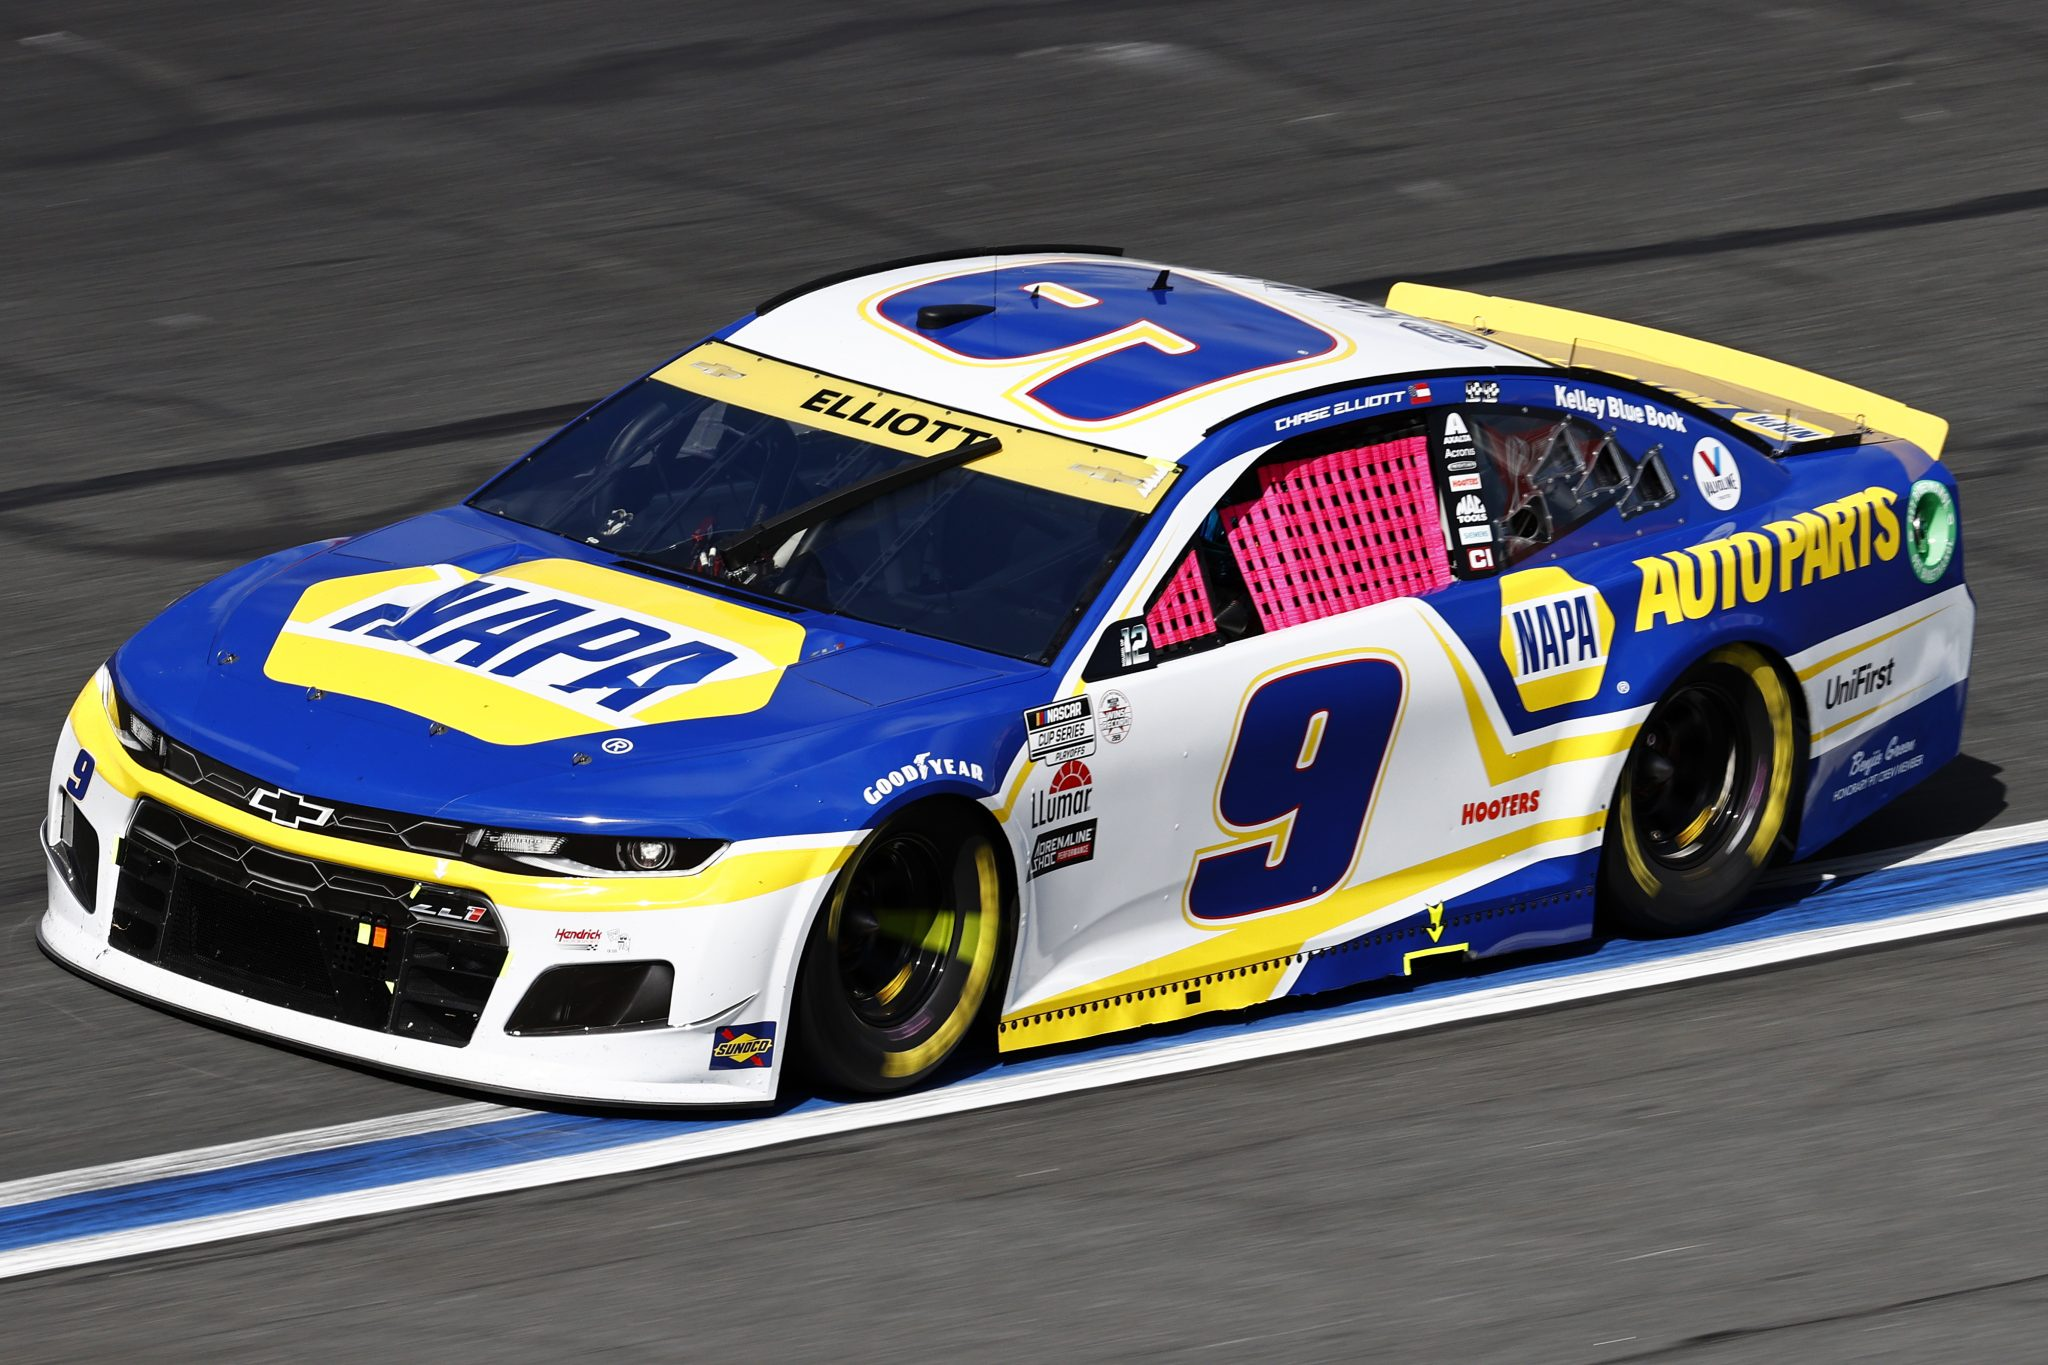 CONCORD, NORTH CAROLINA - OCTOBER 10: Chase Elliott, driver of the #9 NAPA Auto Parts Chevrolet, drives during the NASCAR Cup Series Bank of America ROVAL 400 at Charlotte Motor Speedway on October 10, 2021 in Concord, North Carolina. (Photo by Jared C. Tilton/Getty Images) | Getty Images